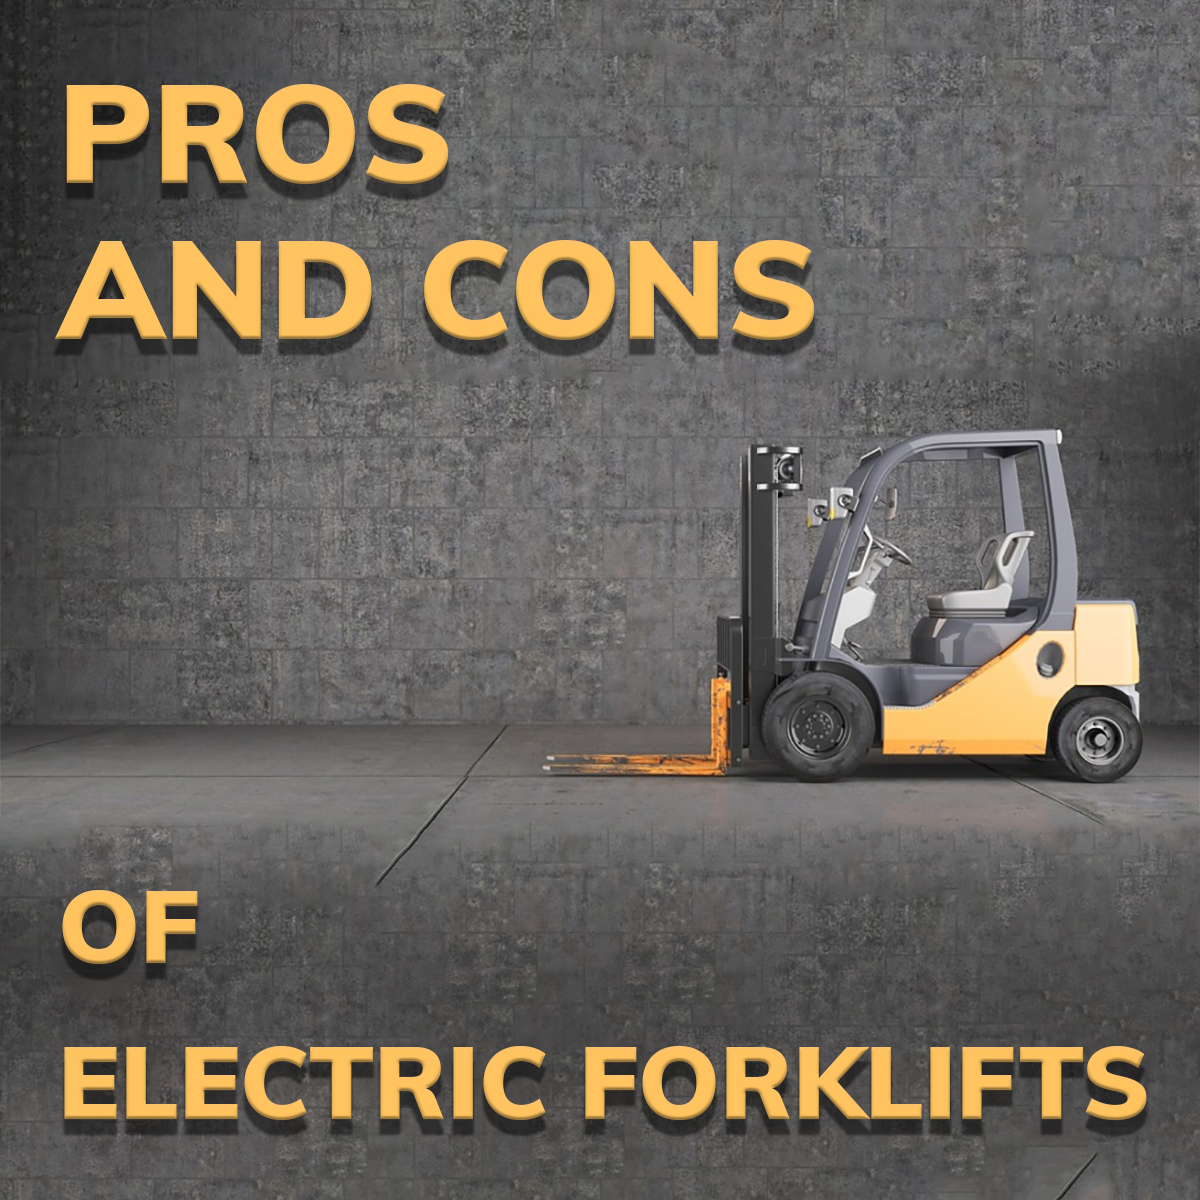 The Pros and Cons of Electric Forklifts